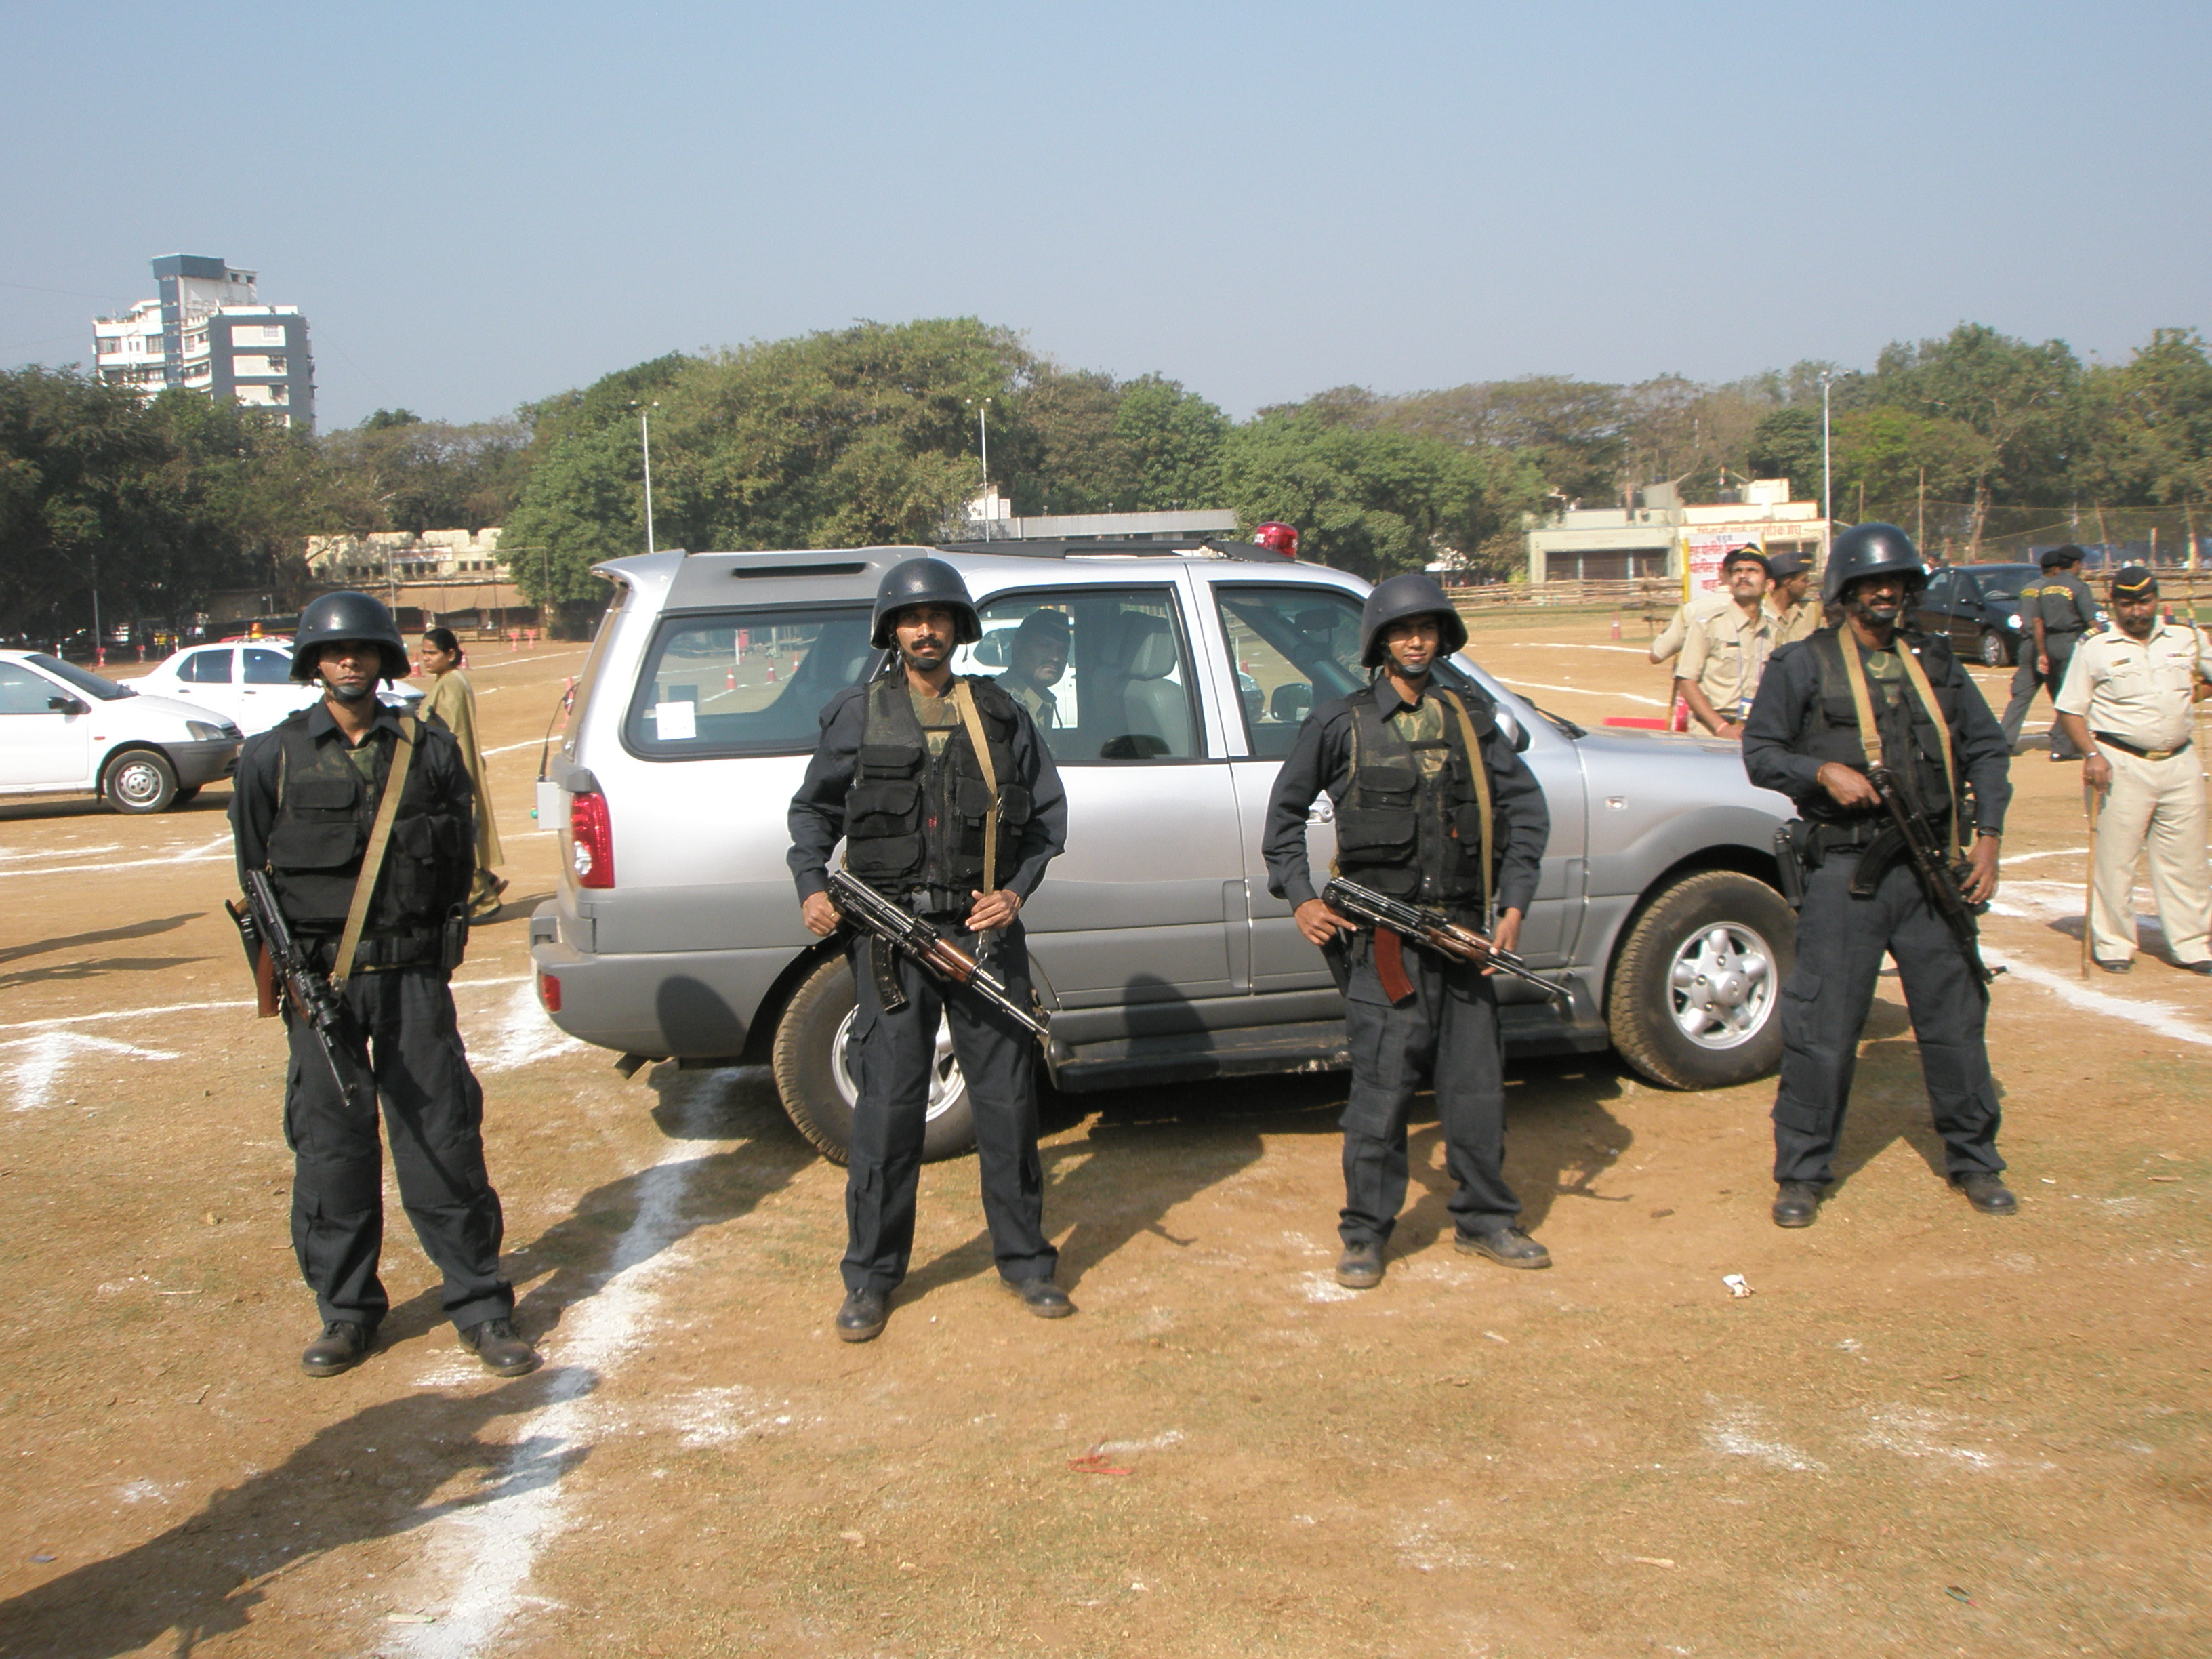 Vehicle Beacon Lights In India Military Wiki Fandom Powered By Wikia